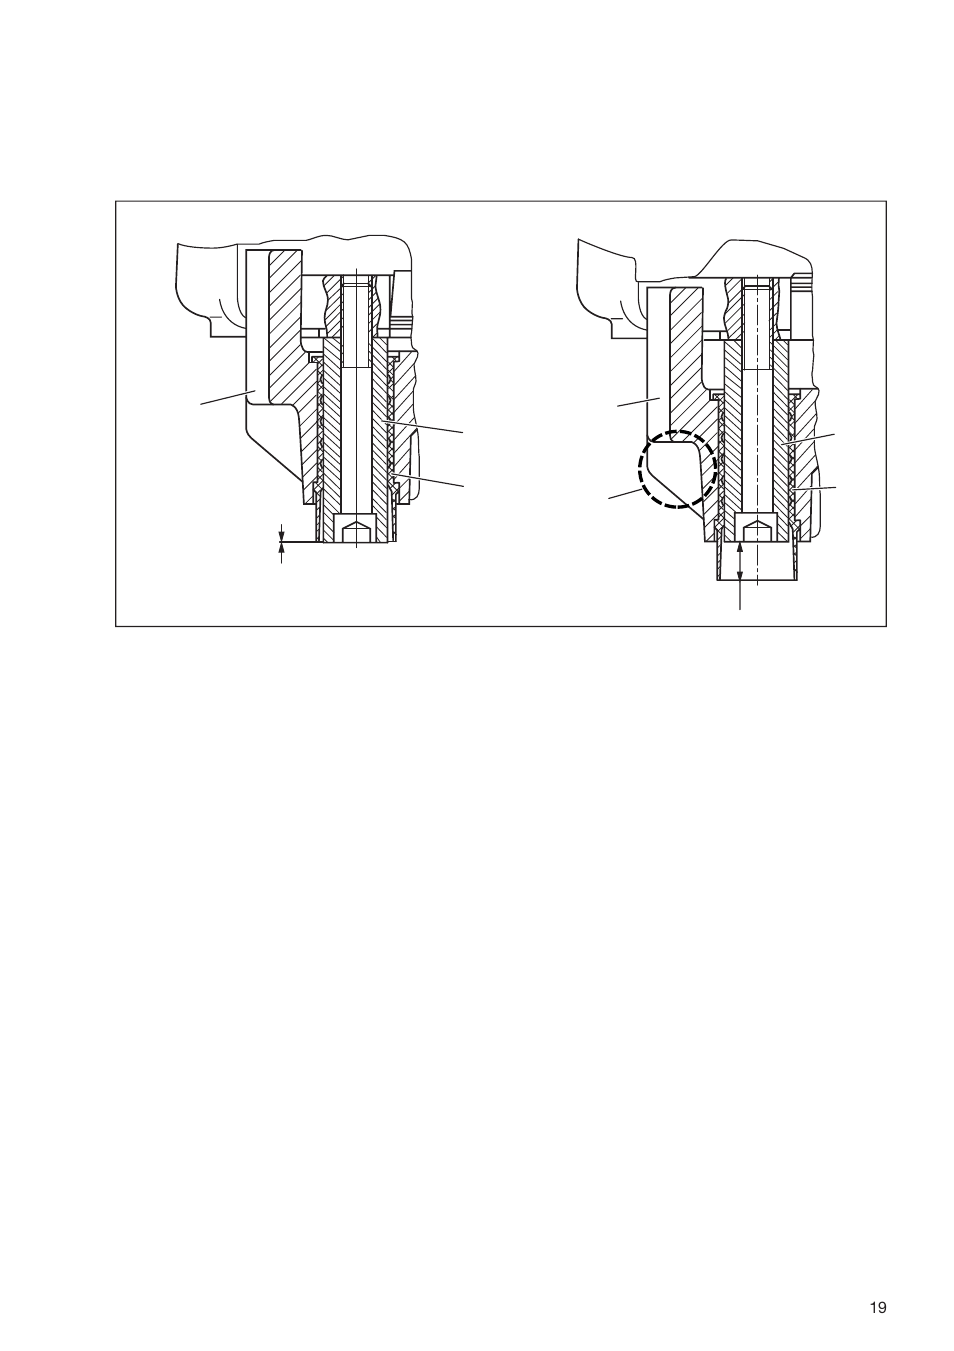 hight resolution of bendix commercial vehicle systems sb 7 air disc brake user manual page 19 36 also for sb 6 air disc brake